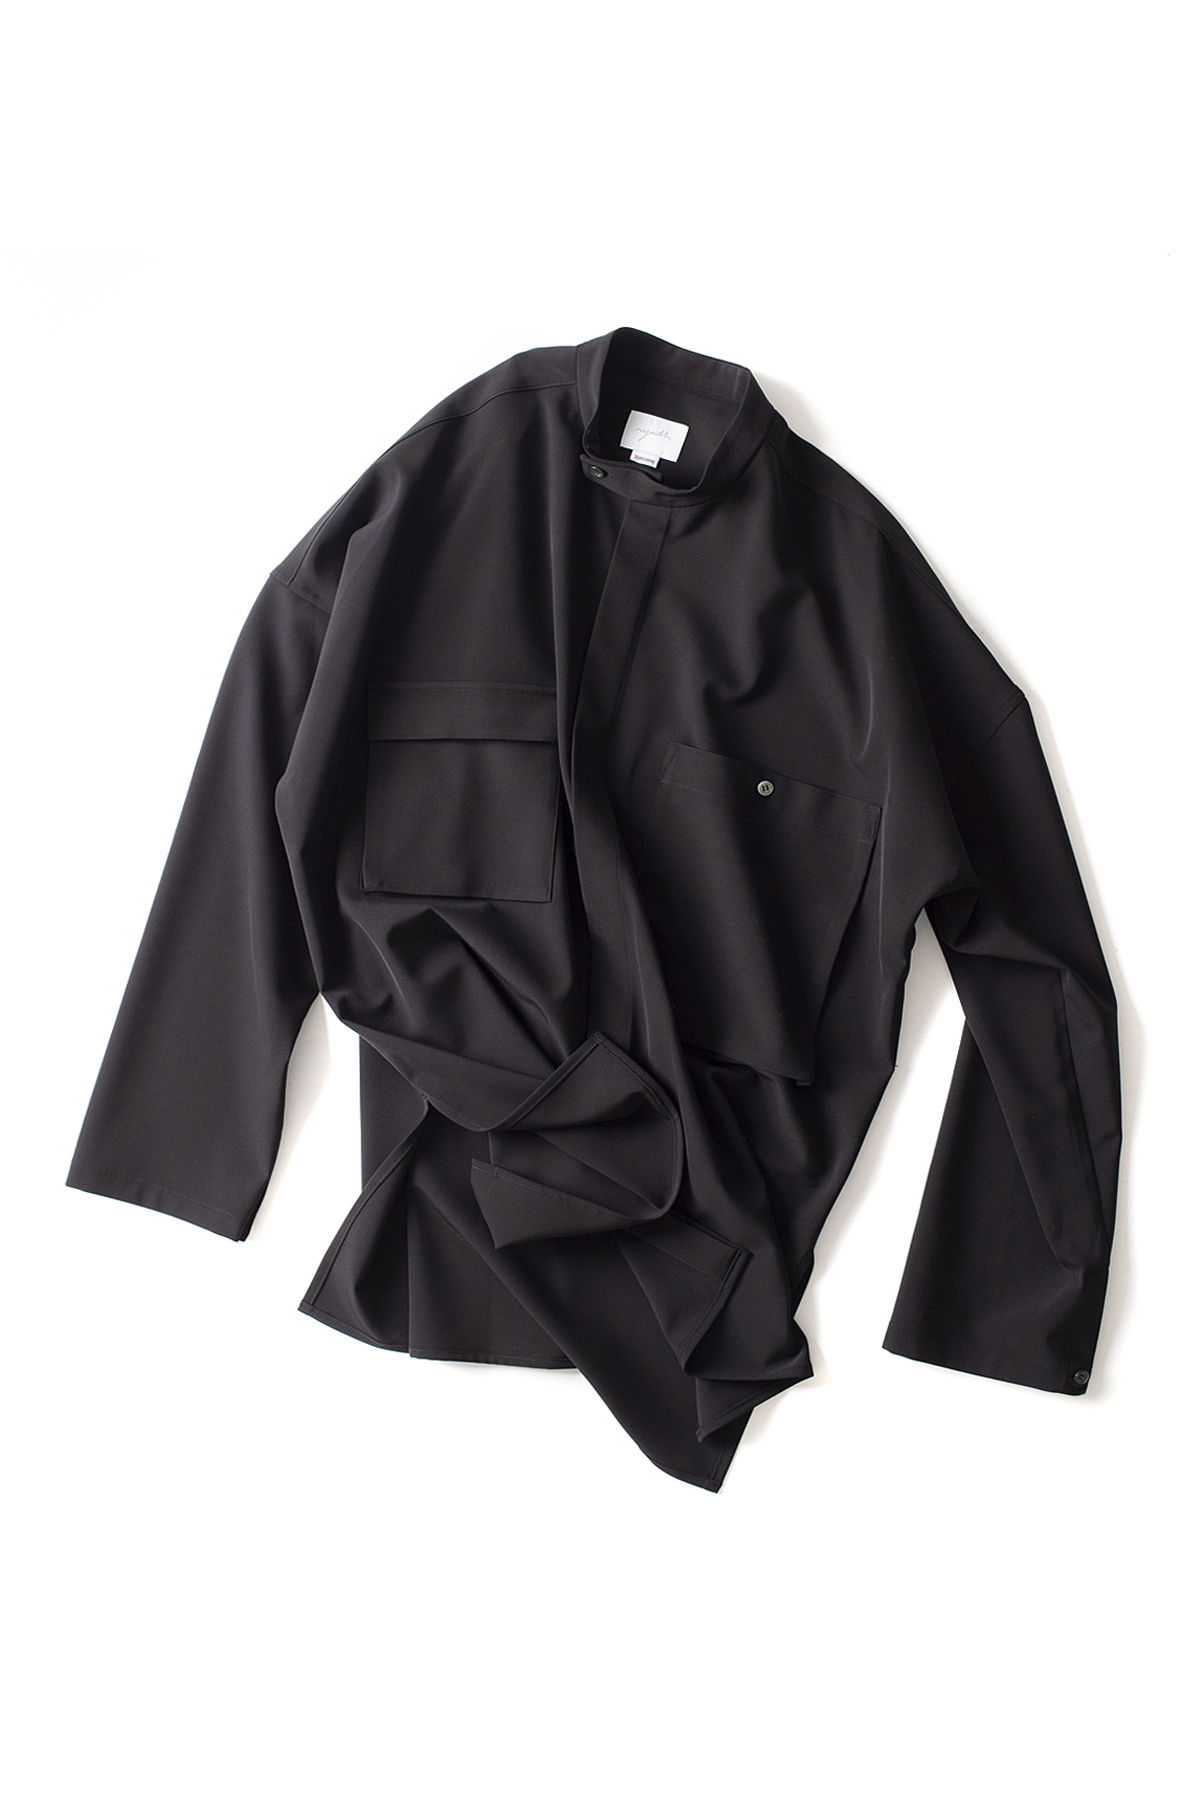 youth : Banded Collar Shirts (Black)